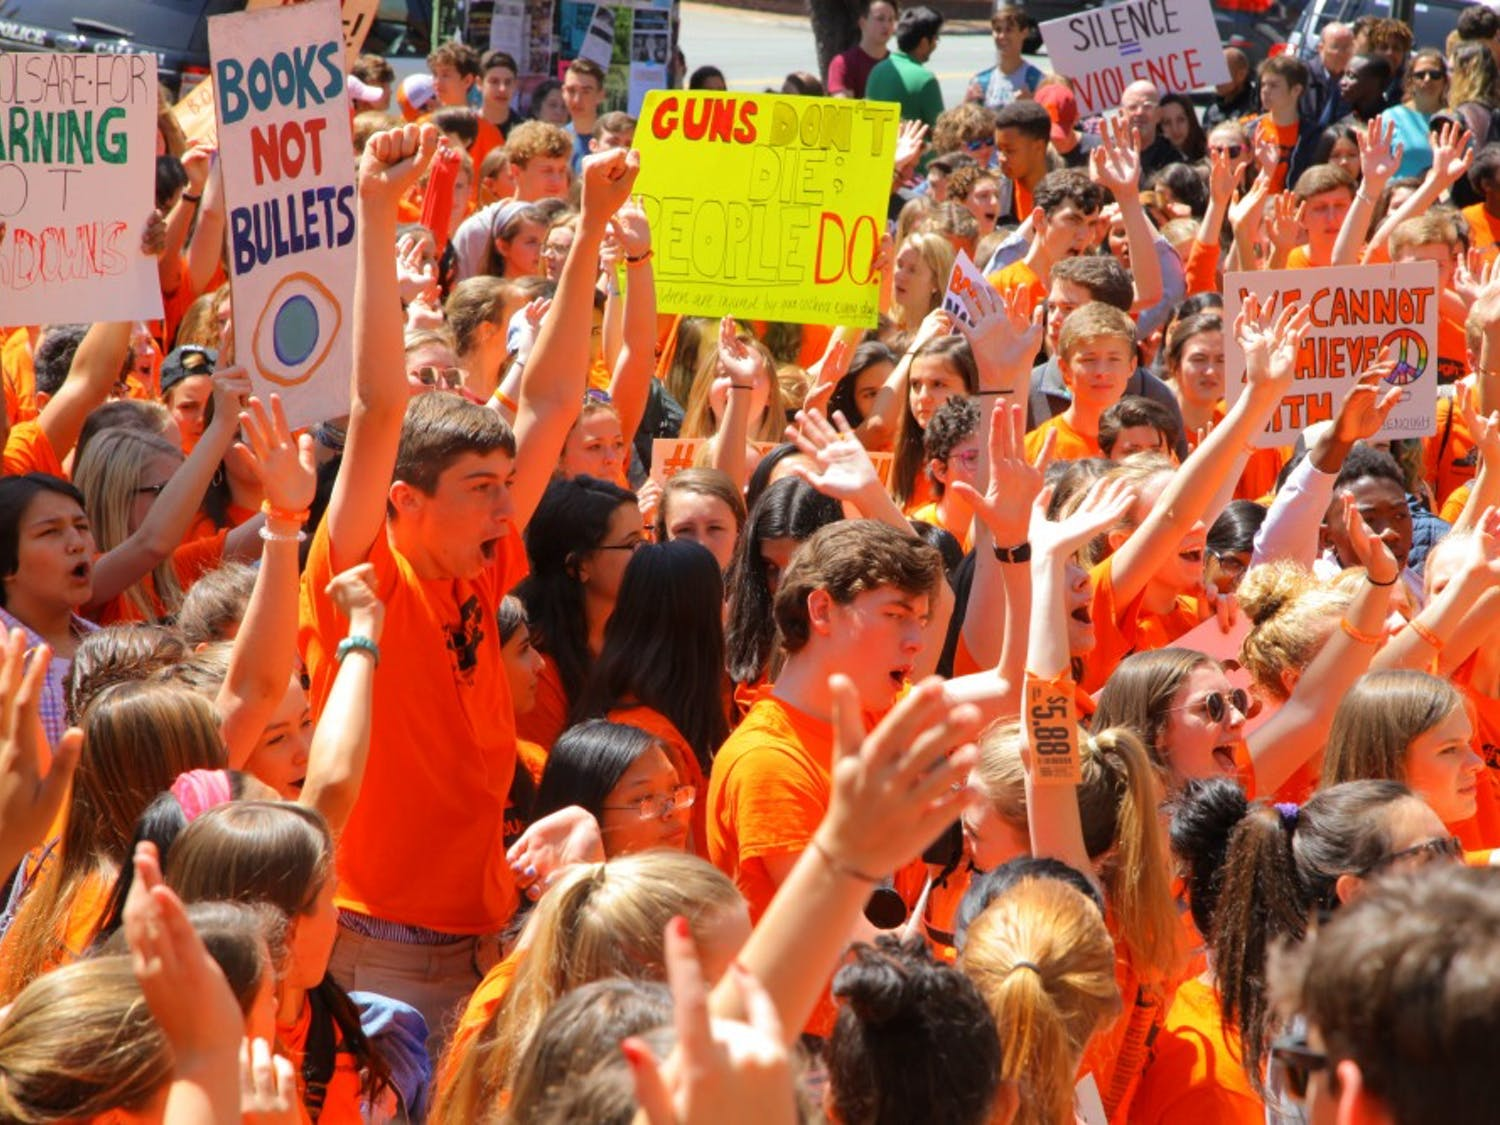 High school students from the Chapel Hill-Carrboro area gather on April 20 at Peace and Justice Plaza on the anniversary of the Columbine massacre to demonstrate solidarity and push gun reform.